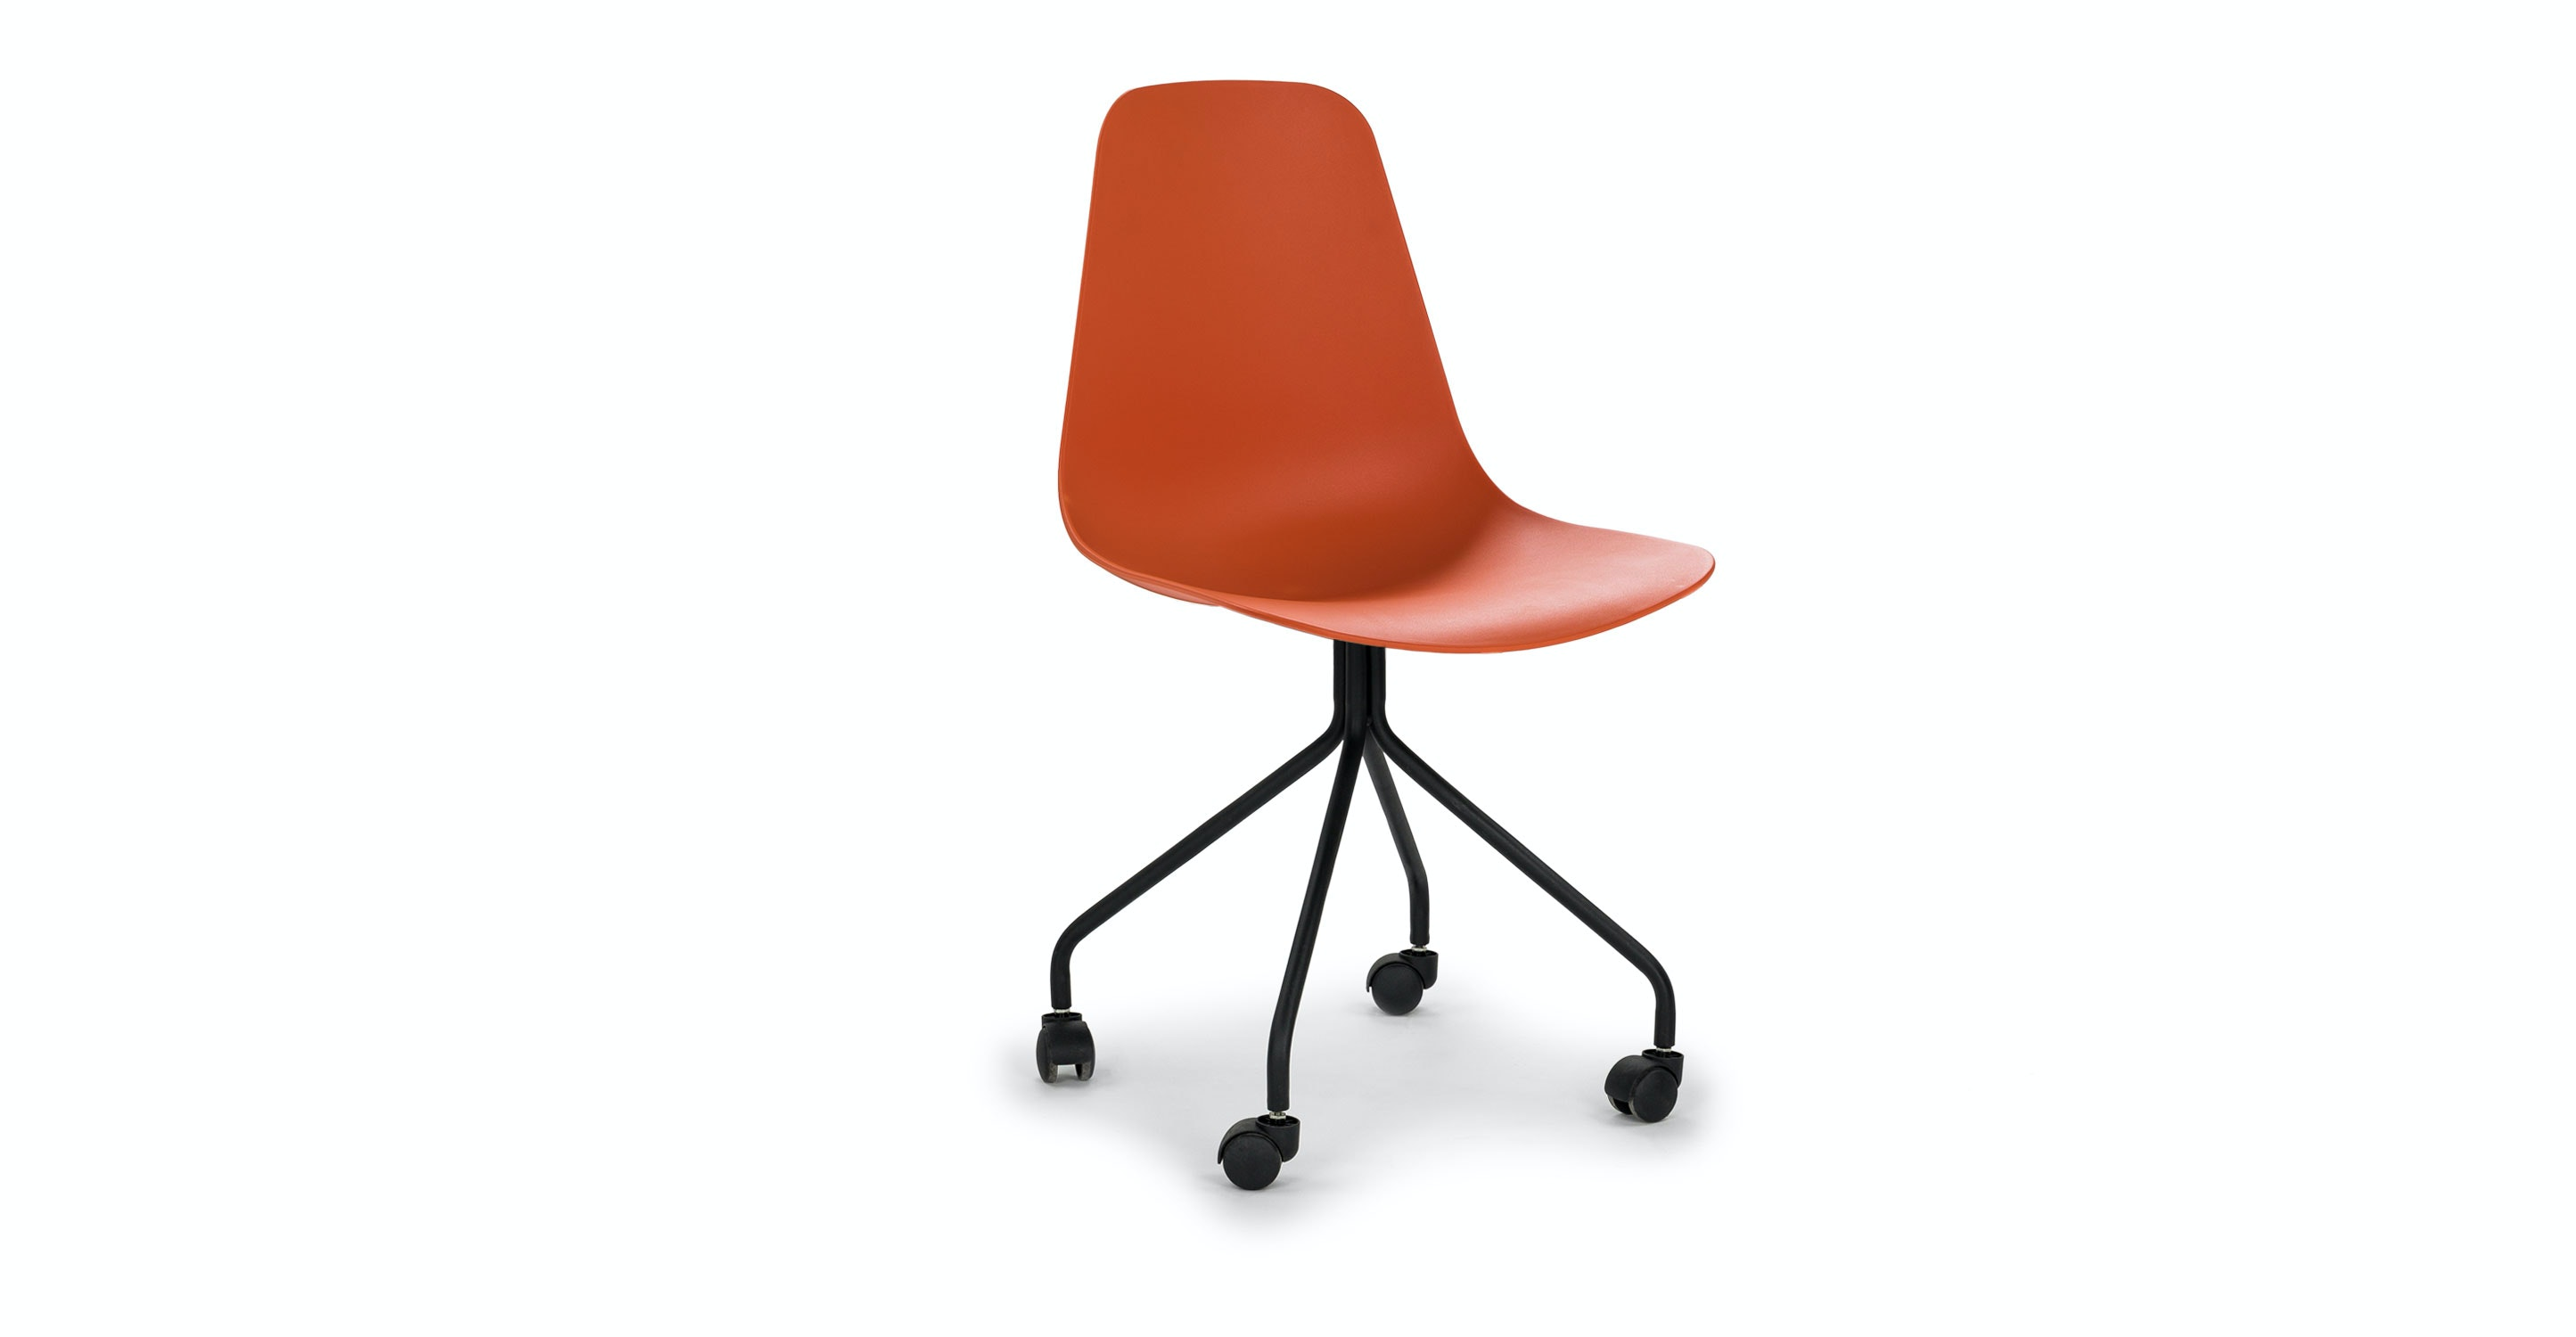 Steelcase Amia fice Chair Profile View In Orange Allsteel